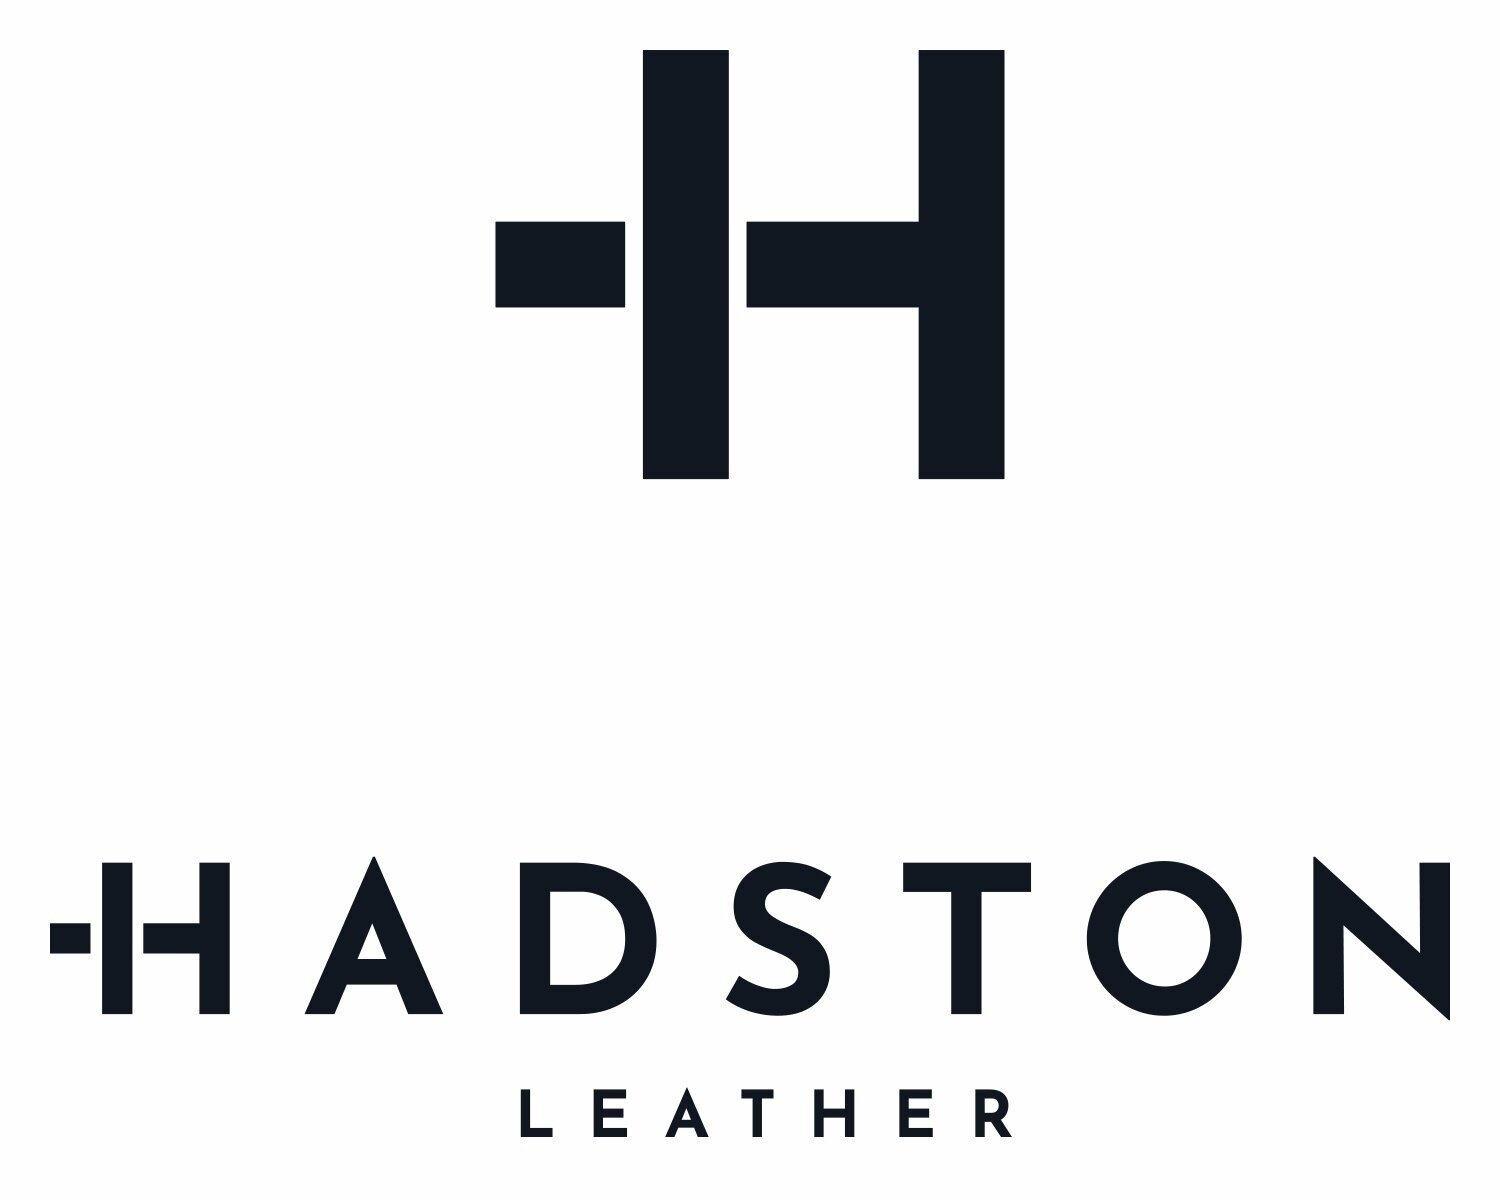 Hadston Leather - Handmade Leather Belts for Men and Women